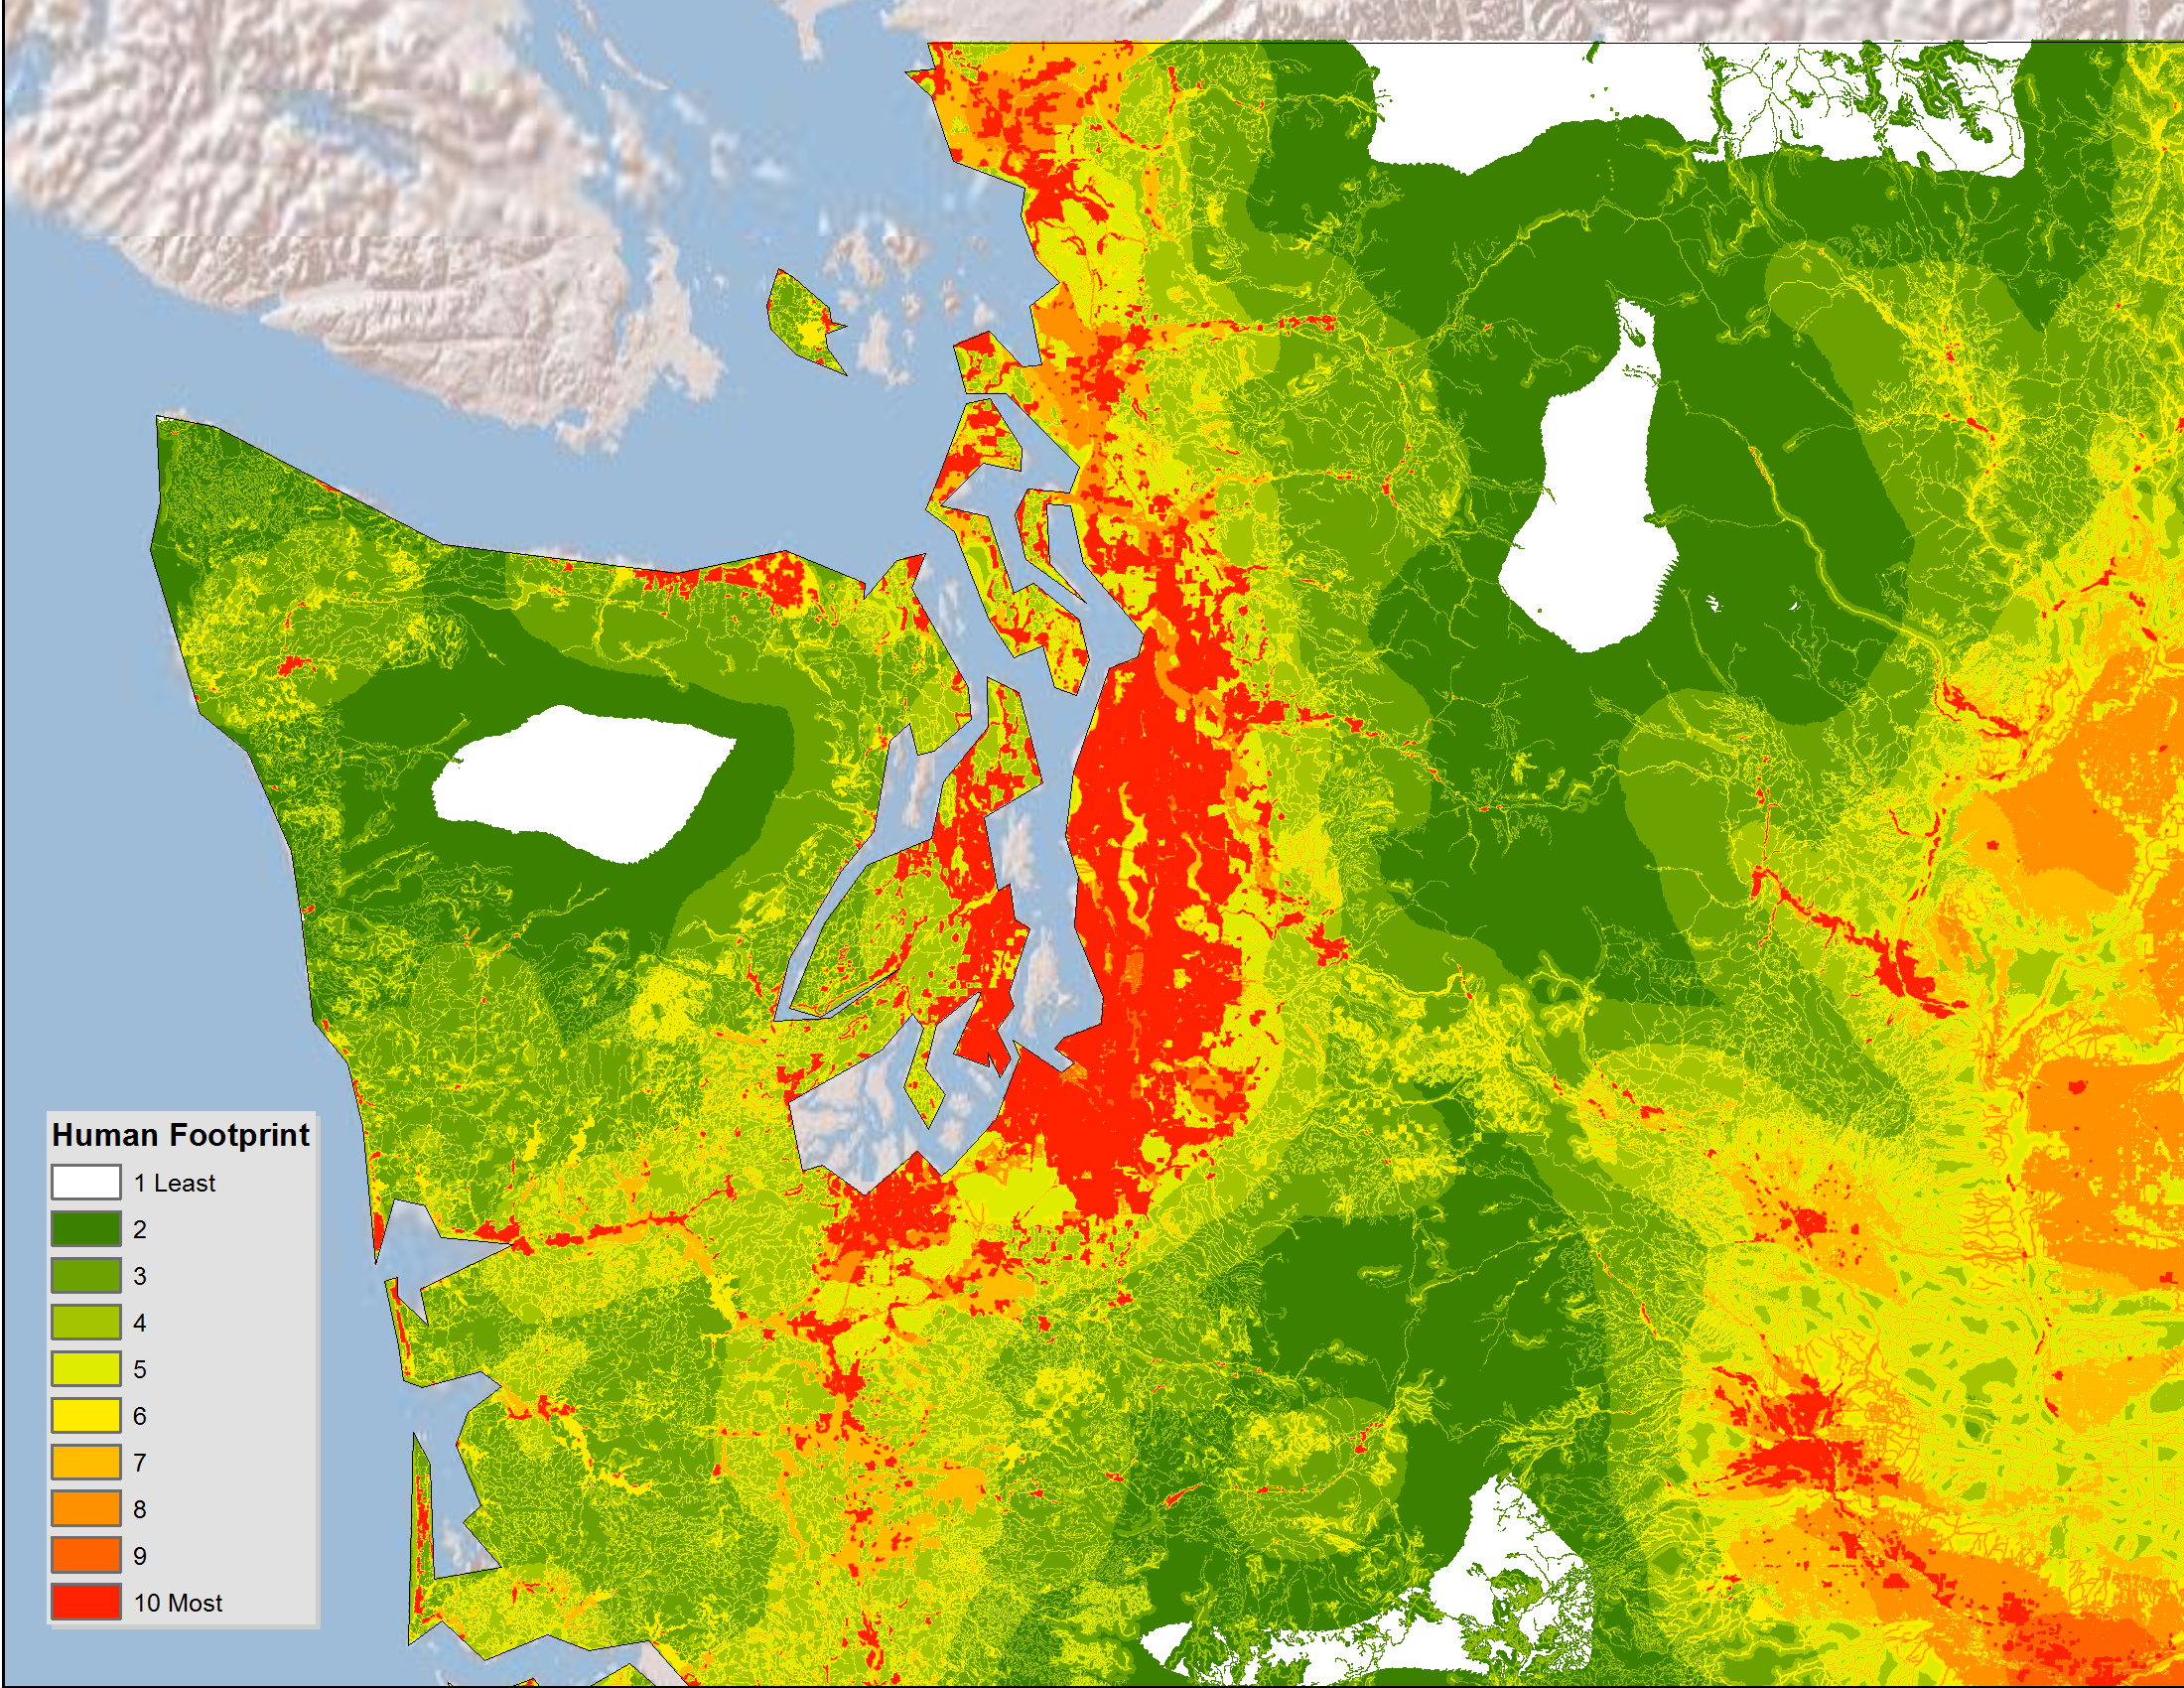 Human footprint maps of Western states and cities